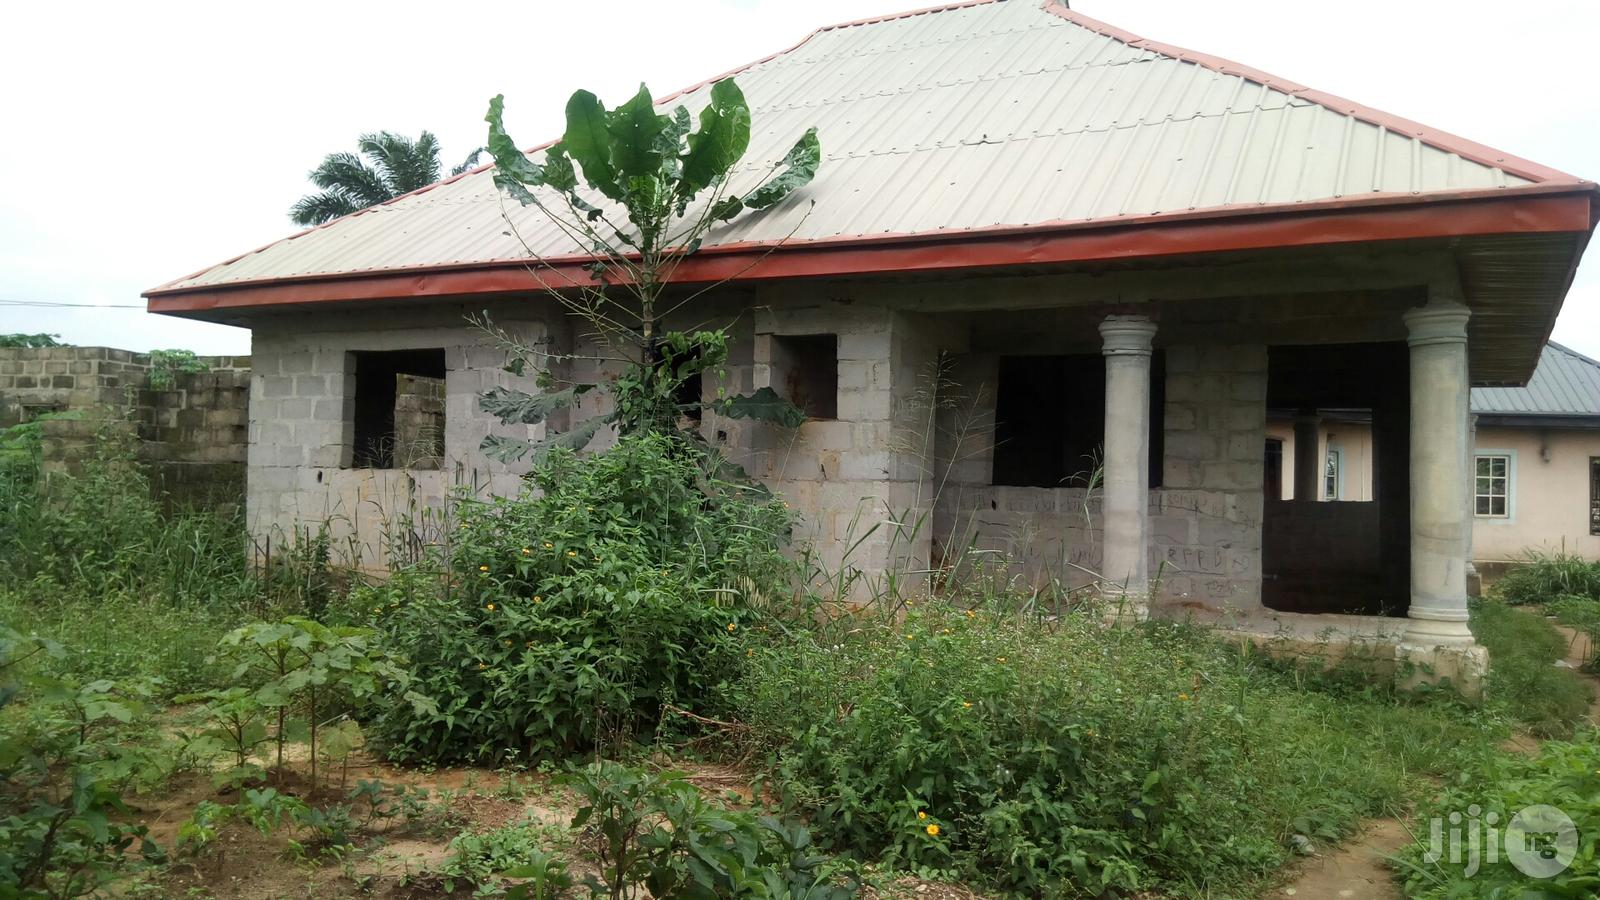 Well Planned Two Bedroom Flat(65% Completed) At Agbeta, Onne | Houses & Apartments For Sale for sale in Eleme, Rivers State, Nigeria